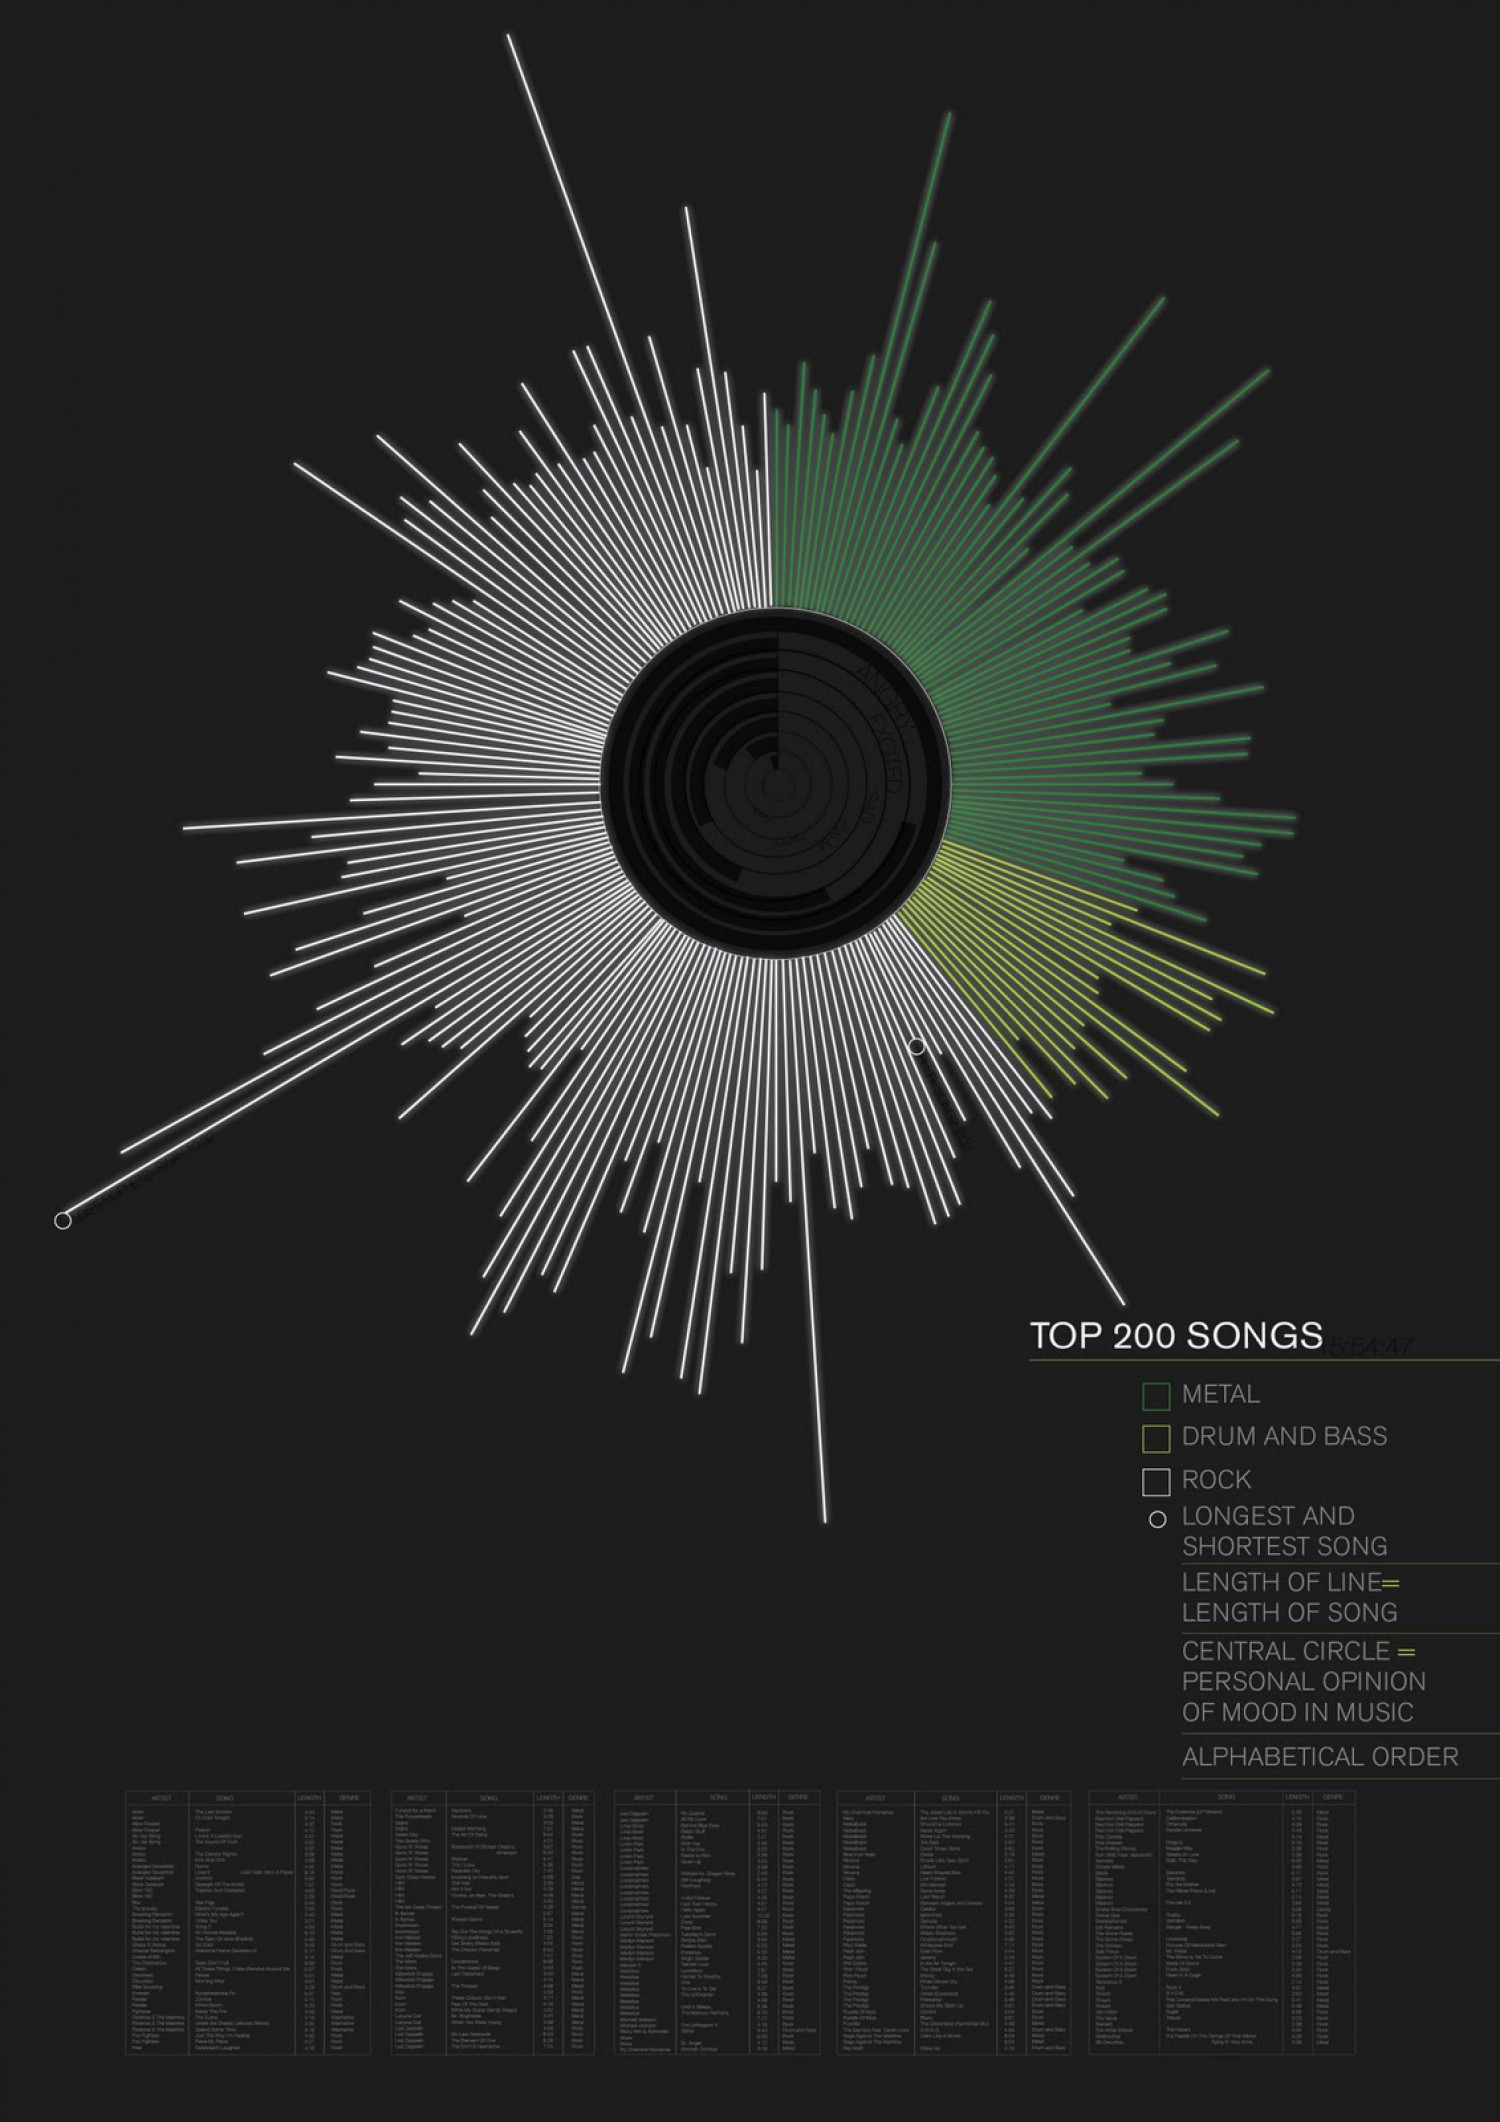 Top 200 Songs  Infographic